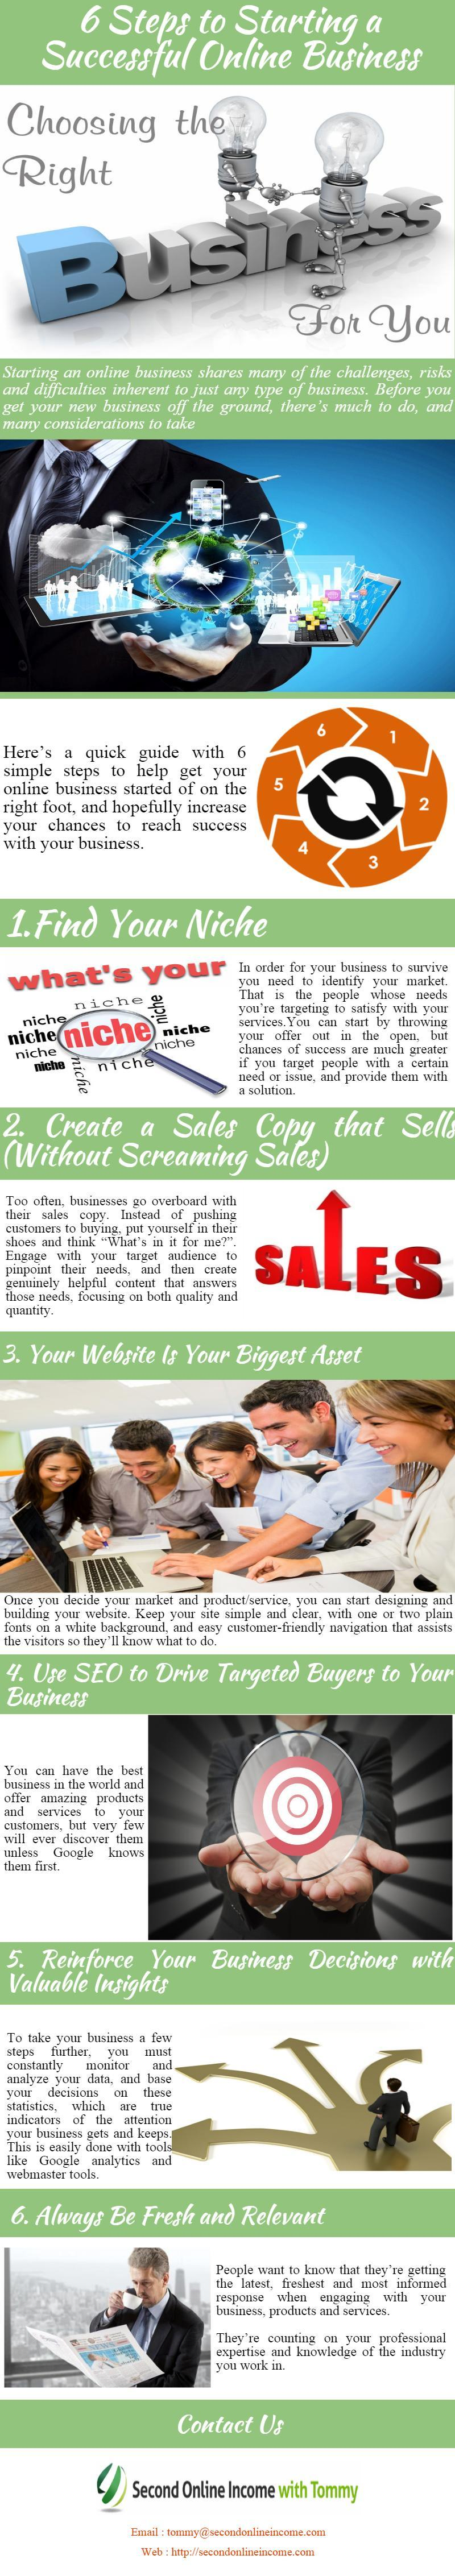 Best 6 Steps to Starting a Successful Online Business - Infographic